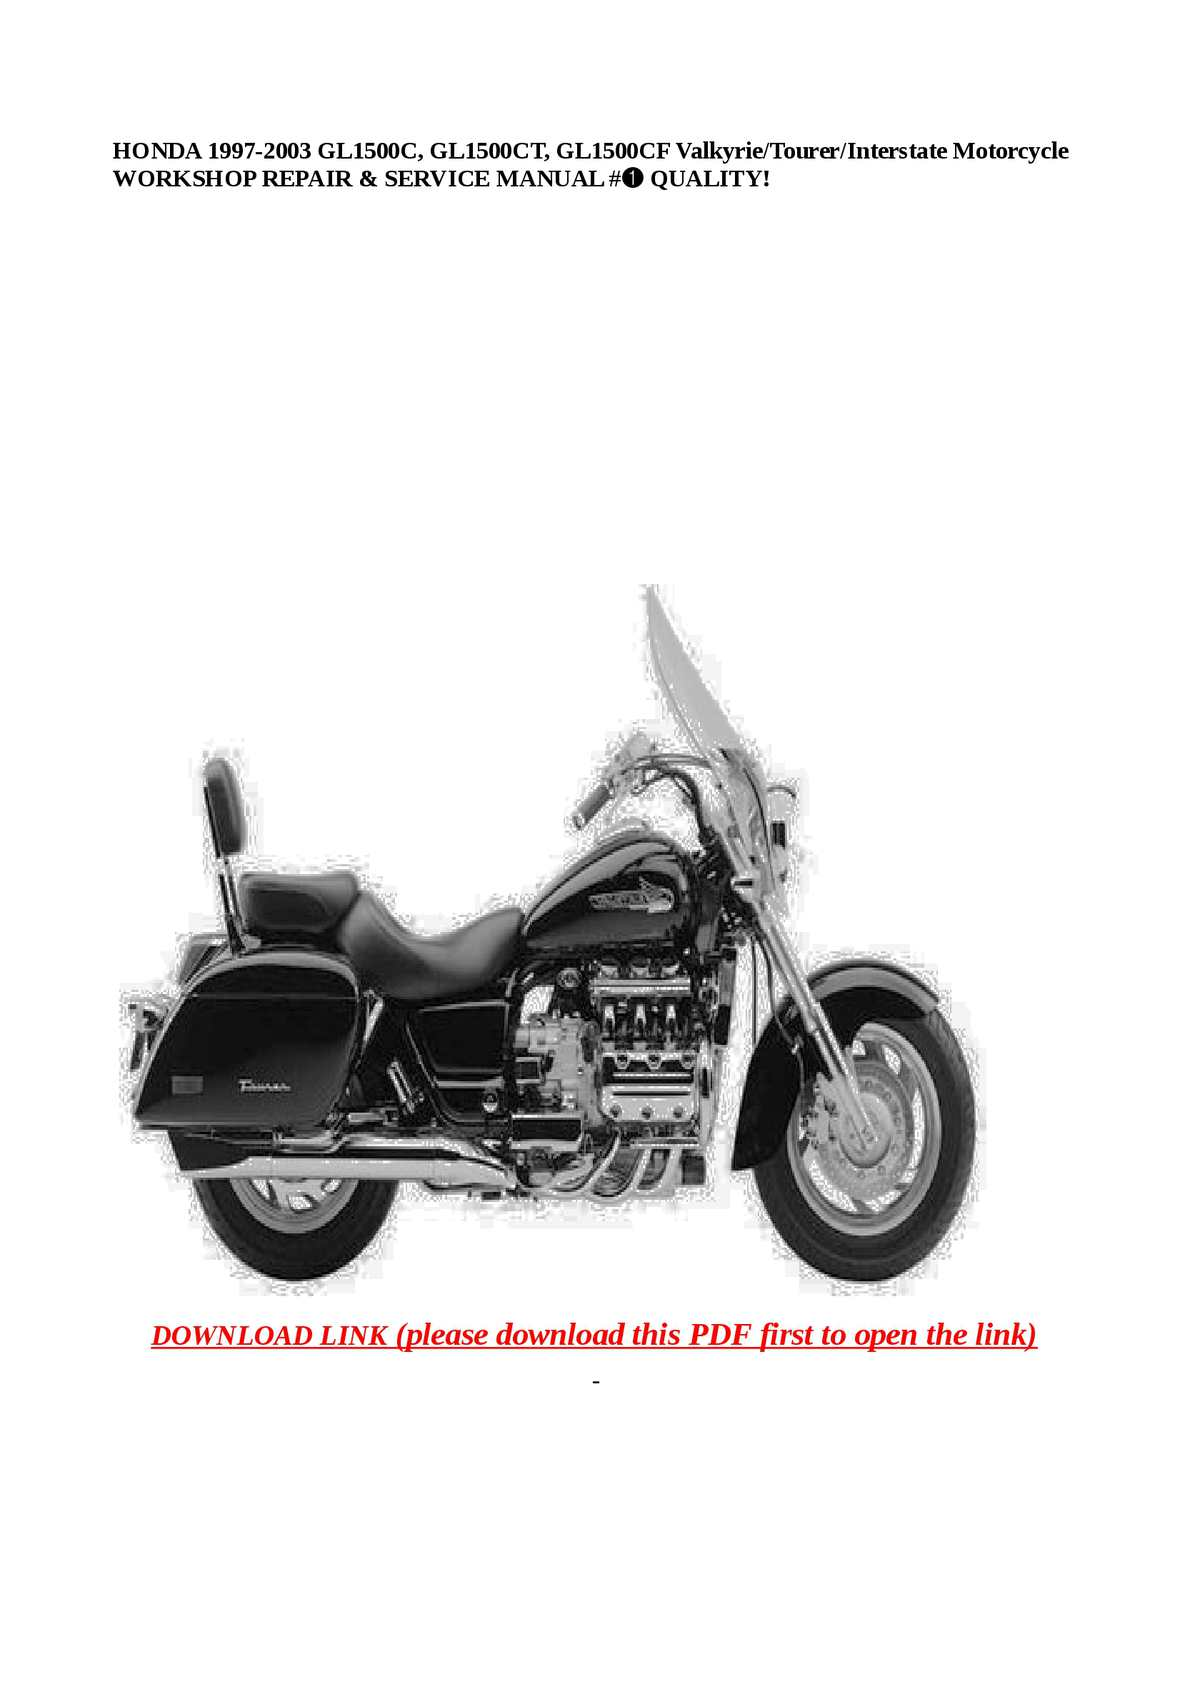 Calaméo - HONDA 1997-2003 GL1500C, GL1500CT, GL1500CF  Valkyrie/Tourer/Interstate Motorcycle WORKSHOP REPAIR & SERVICE MANUAL #➀  QUALITY!